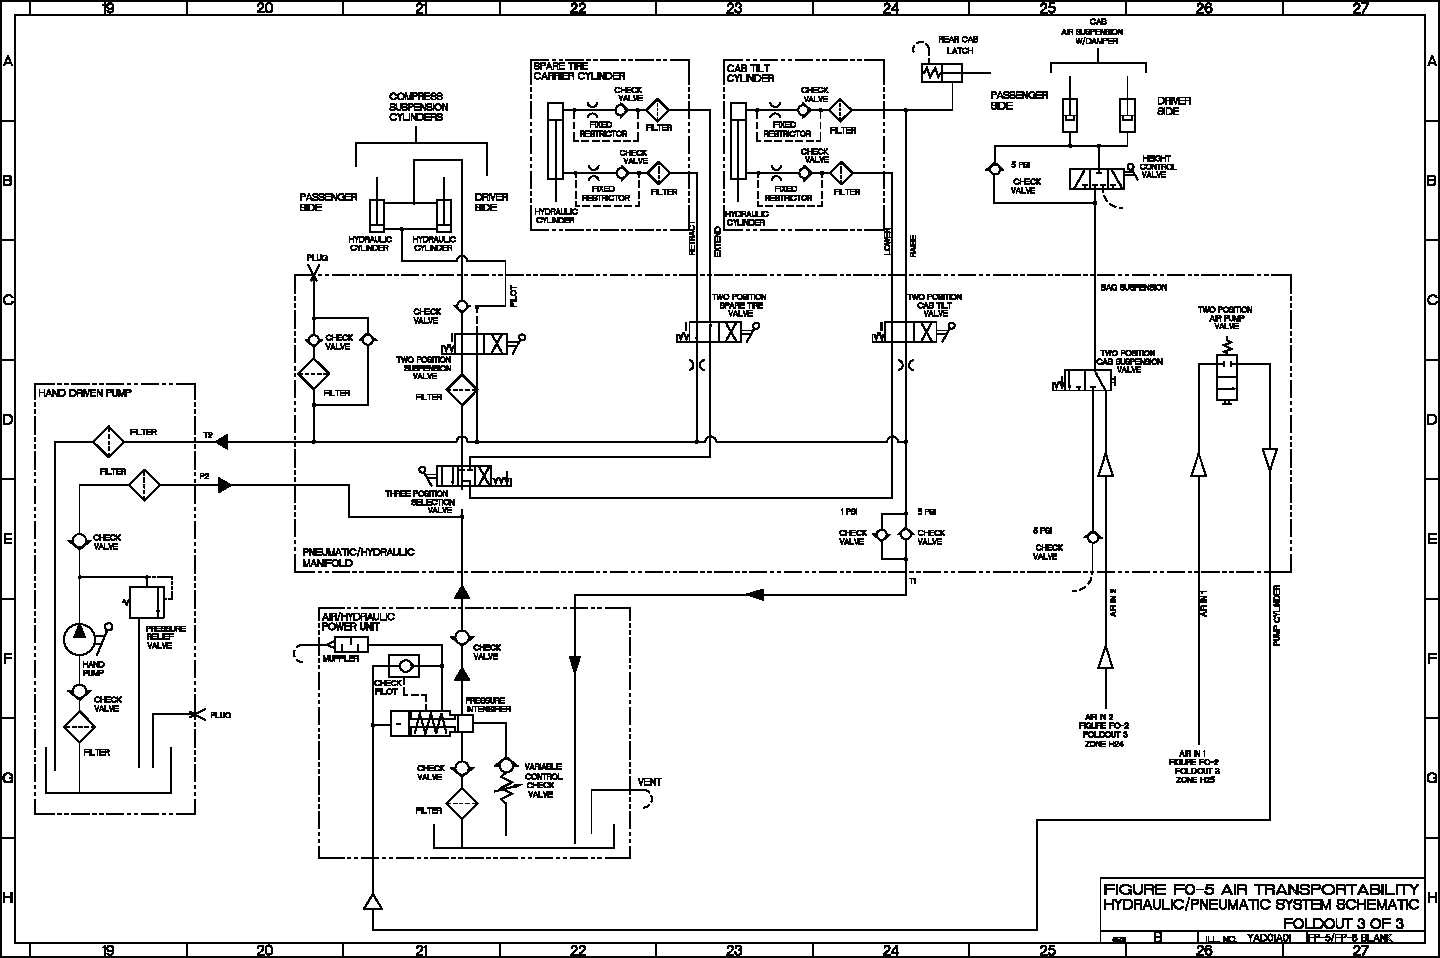 TM 9 2320 365 20 4_939_1 air transportability hydraulic pneumatic system schematic tm 9 wiring diagram for m1078 lmtv at alyssarenee.co